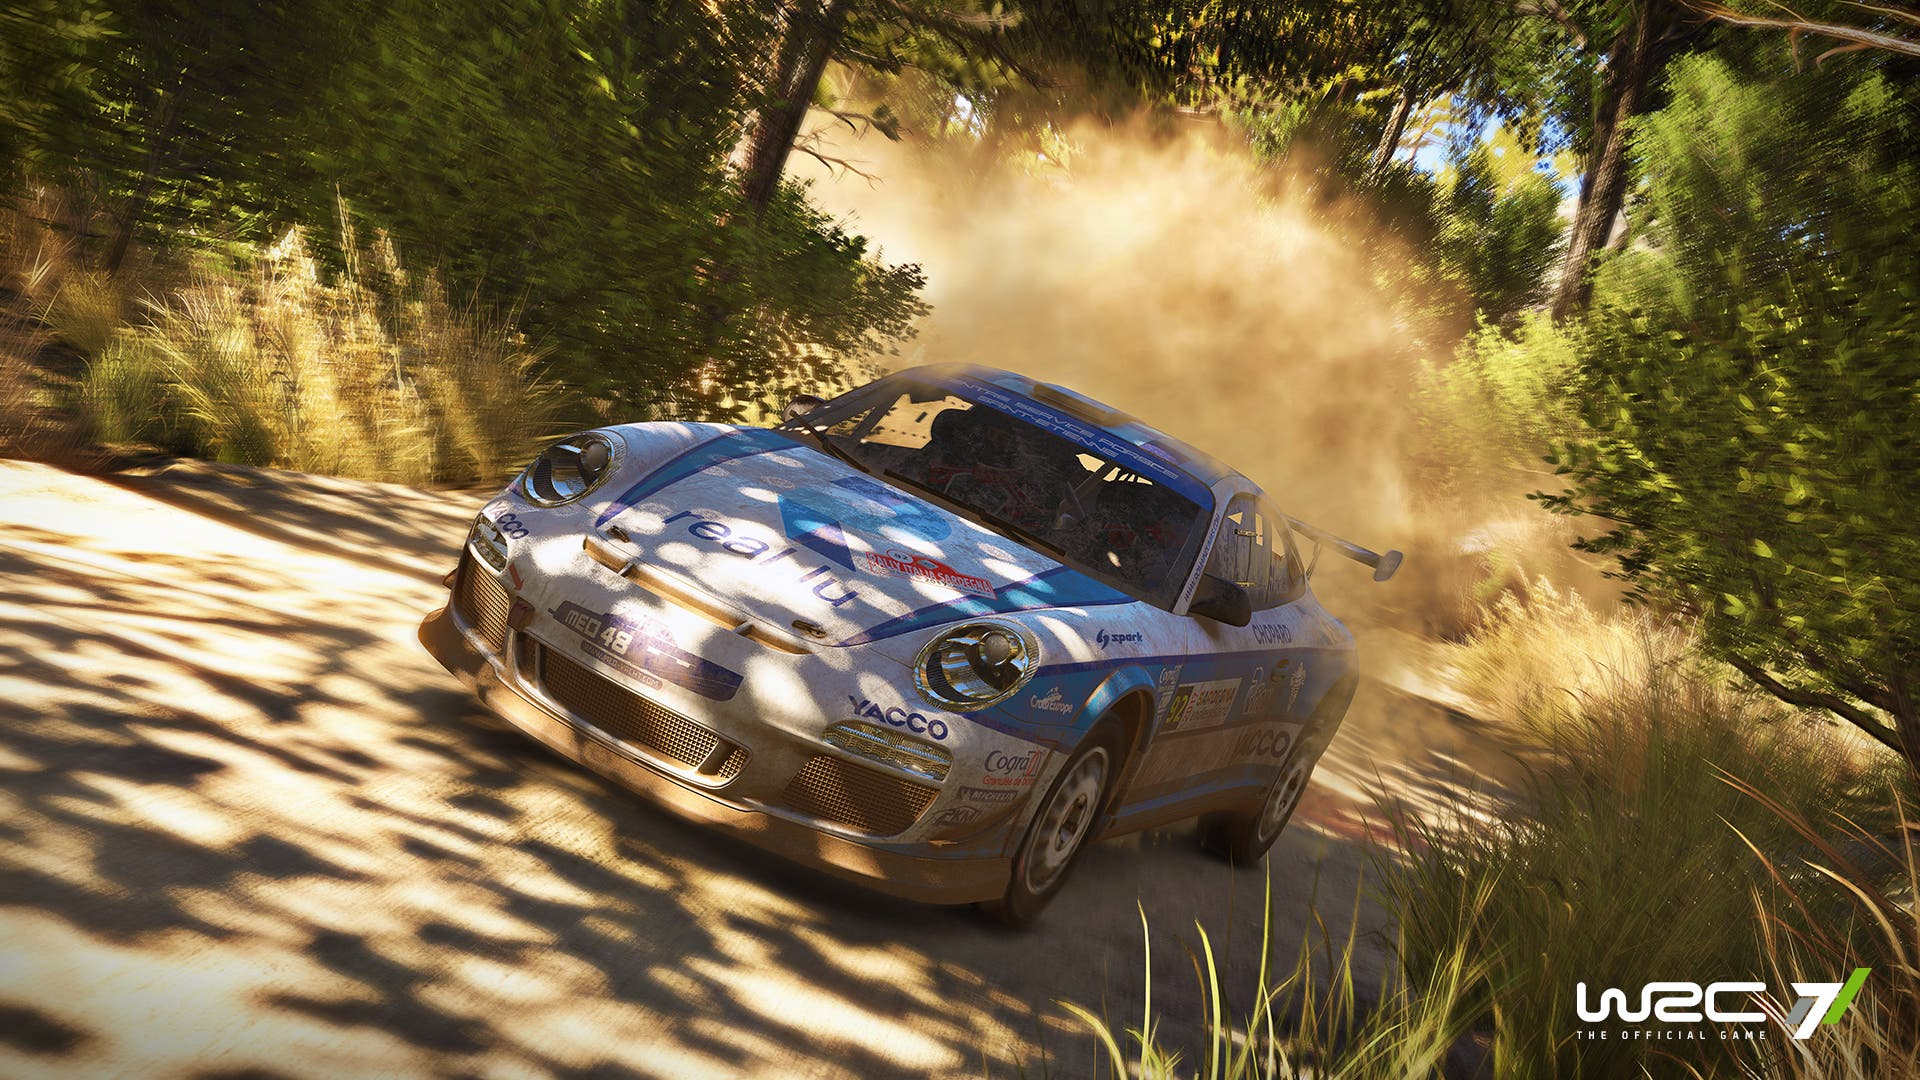 wrc 7 picture 4